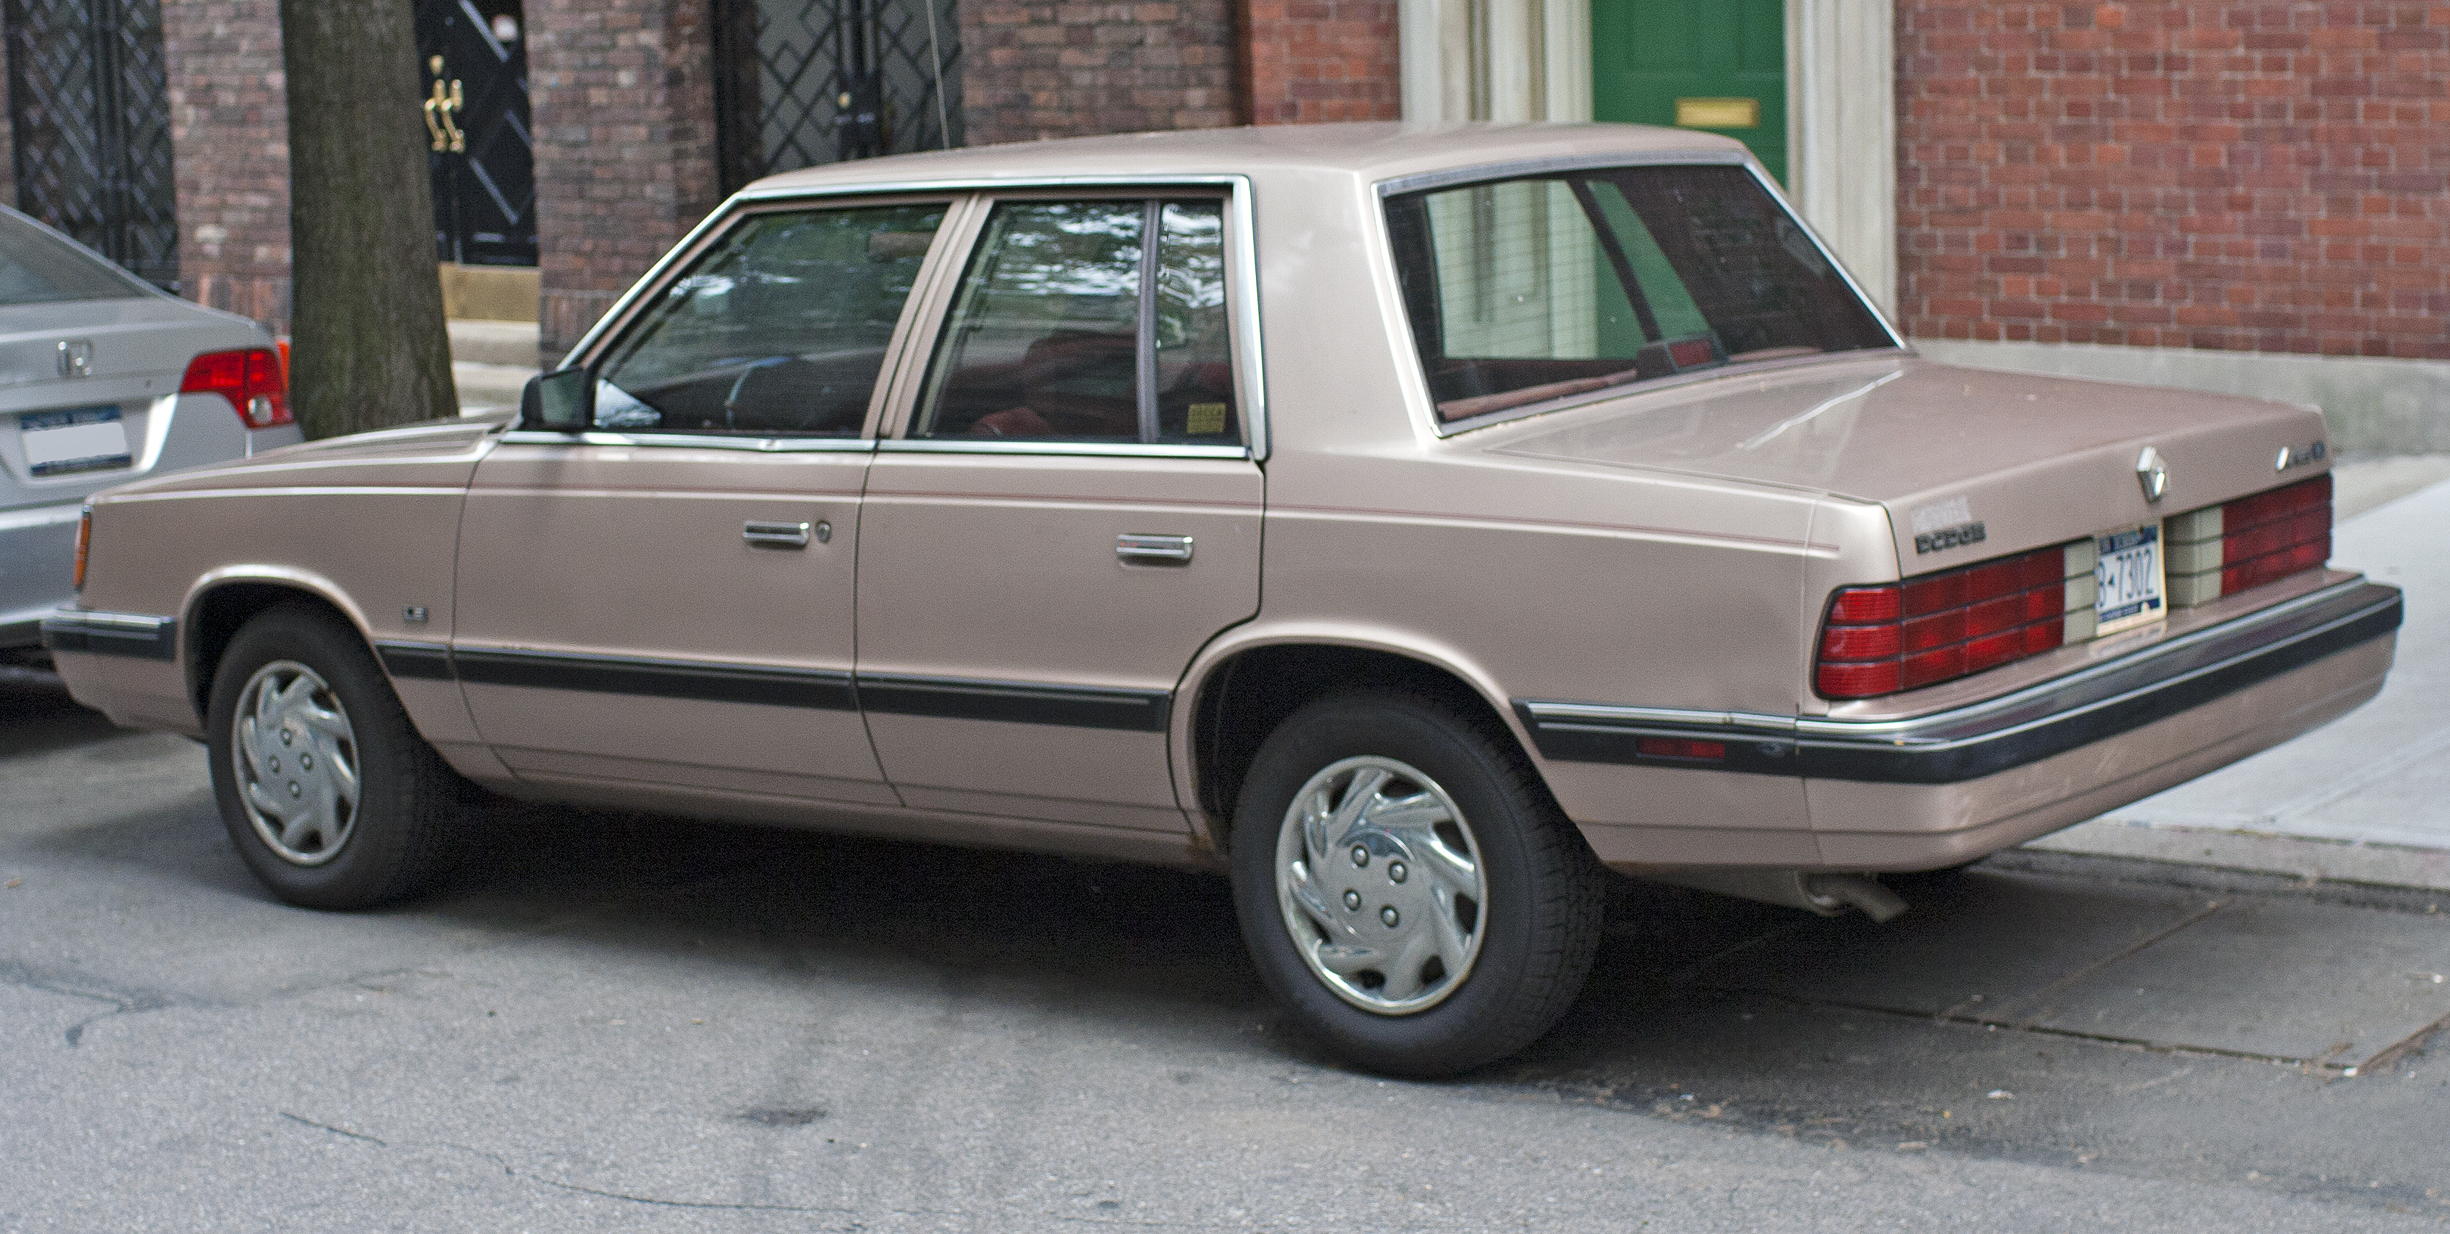 Dodge Build Your Own >> File:1988 Dodge Aries rear.jpg